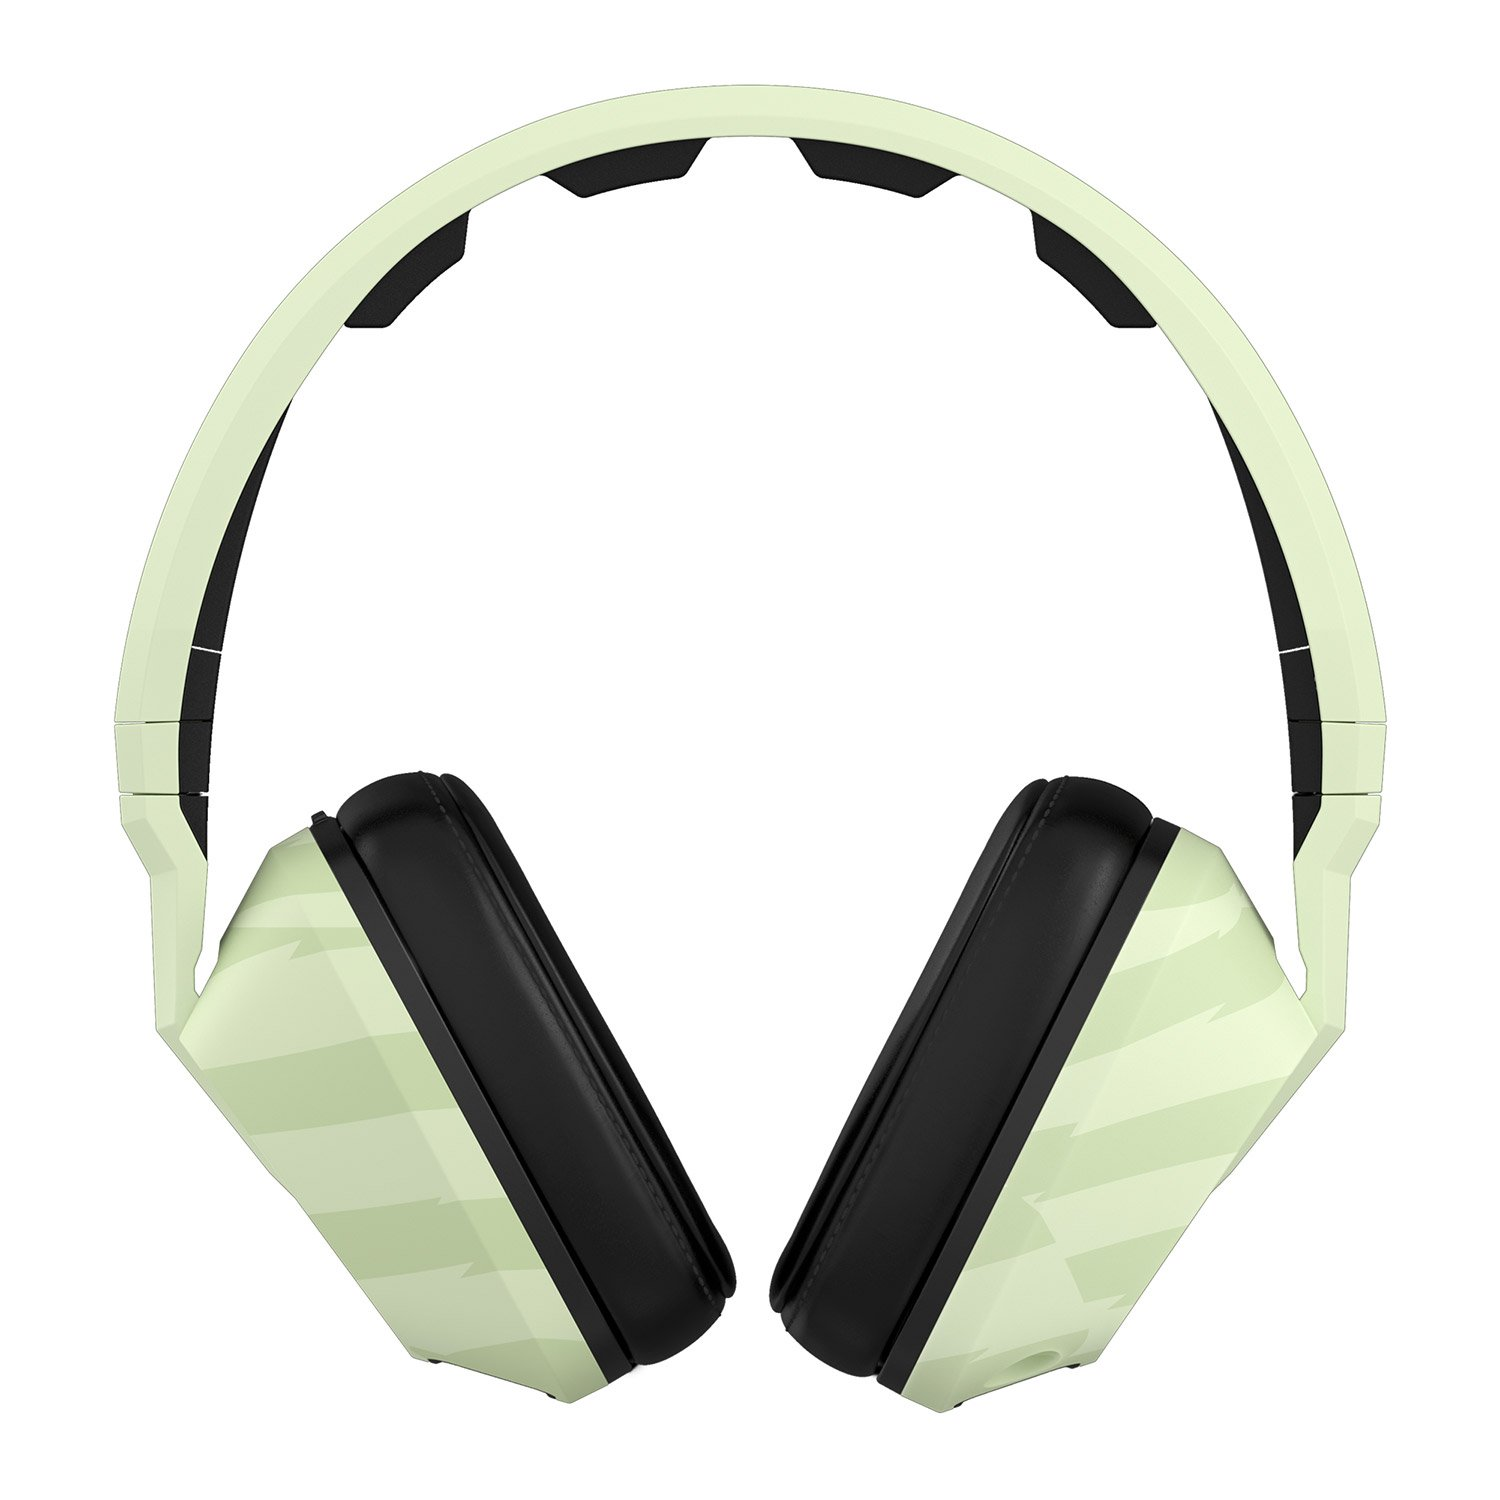 Skullcandy Crusher Headphones Locals Only/GITD/Black S6SCHX-445